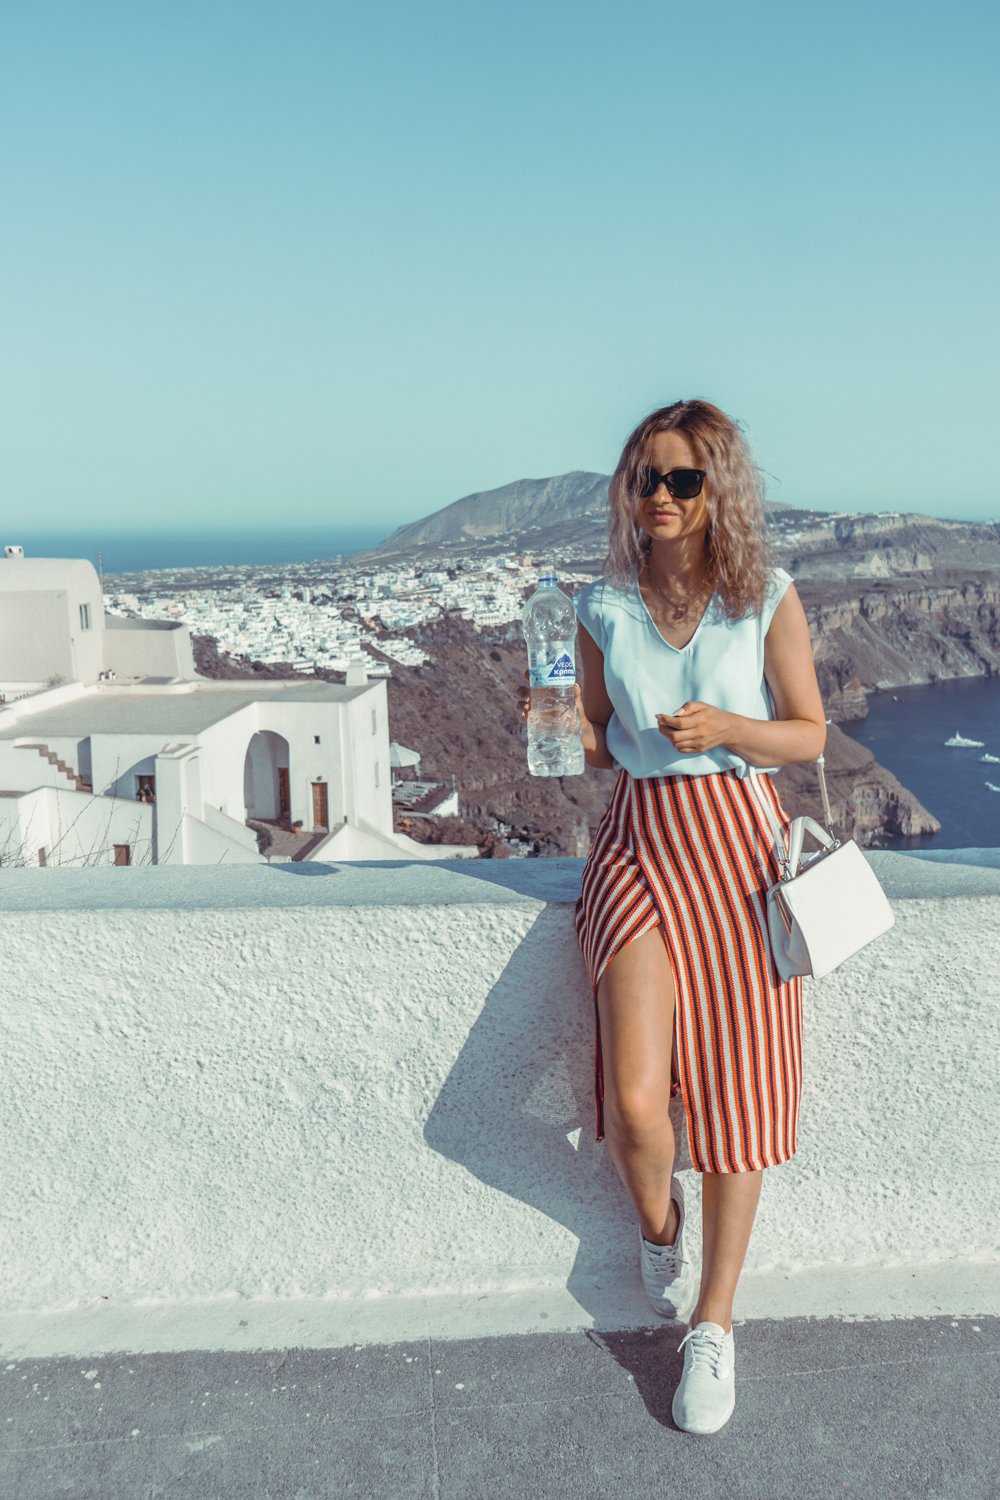 3d051c0216dd fira greece travel summer holiday fashion ootd street style outfit blonde  tumblr girl stripe skirt